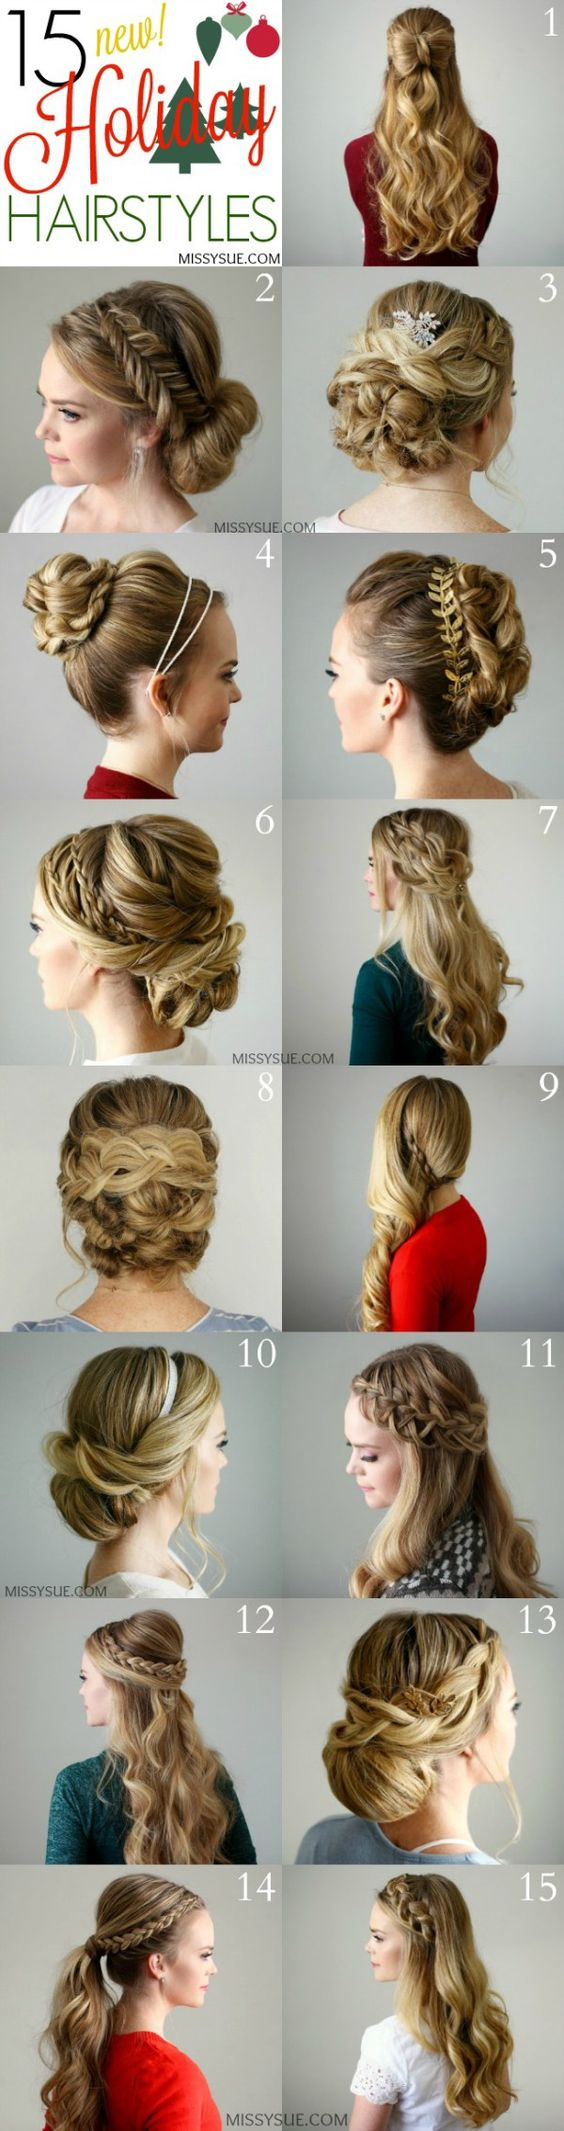 15 Holiday Hairstyles | MissySue.com: